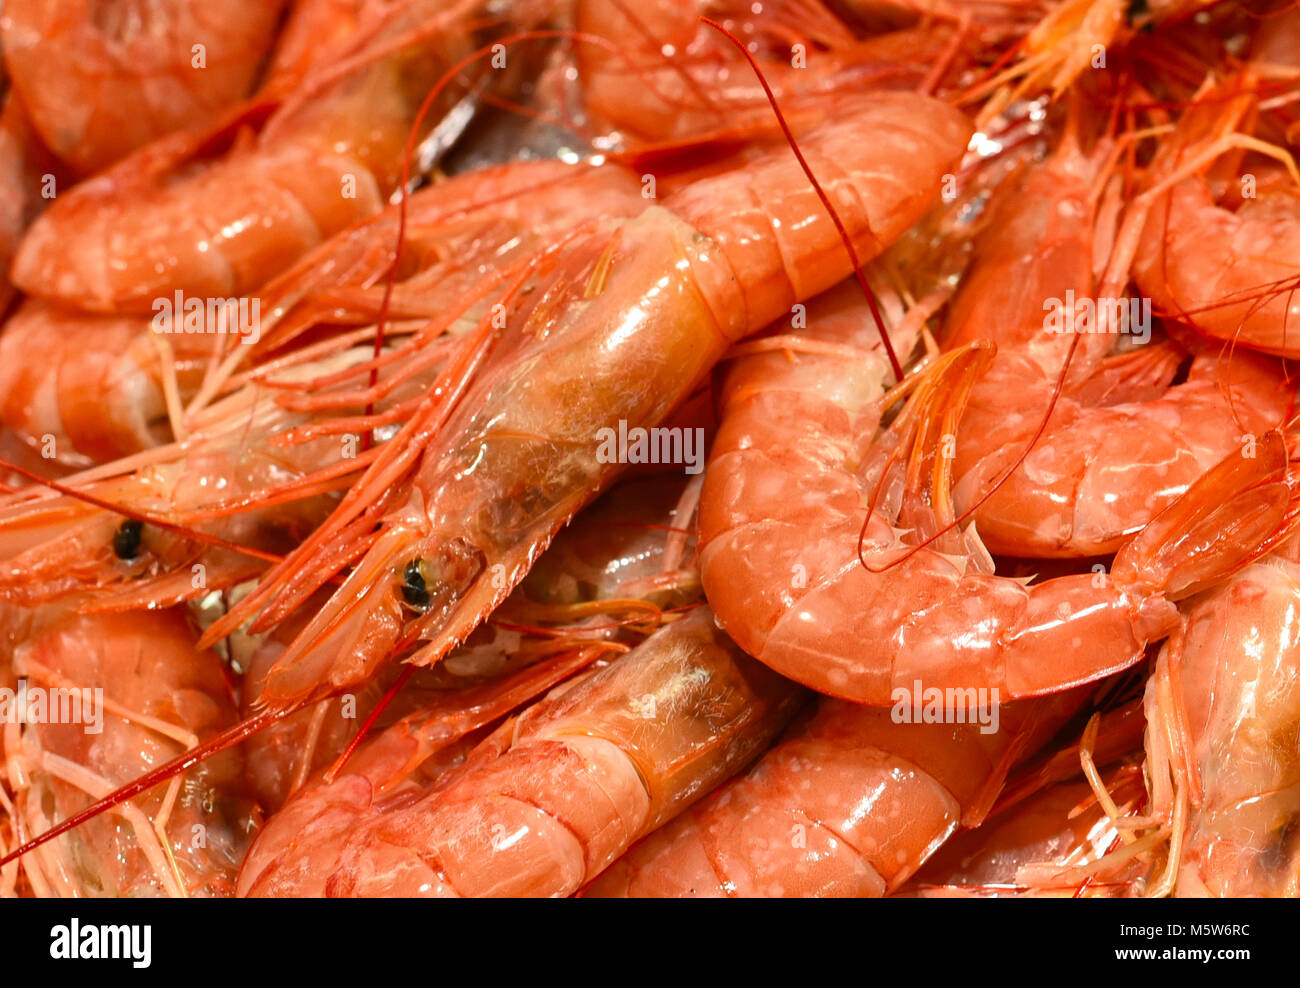 Ice cooled shrimp or king prawns on a fish market stall. Heap of cooked jumbo shrimps, food background, healthy - Stock Image